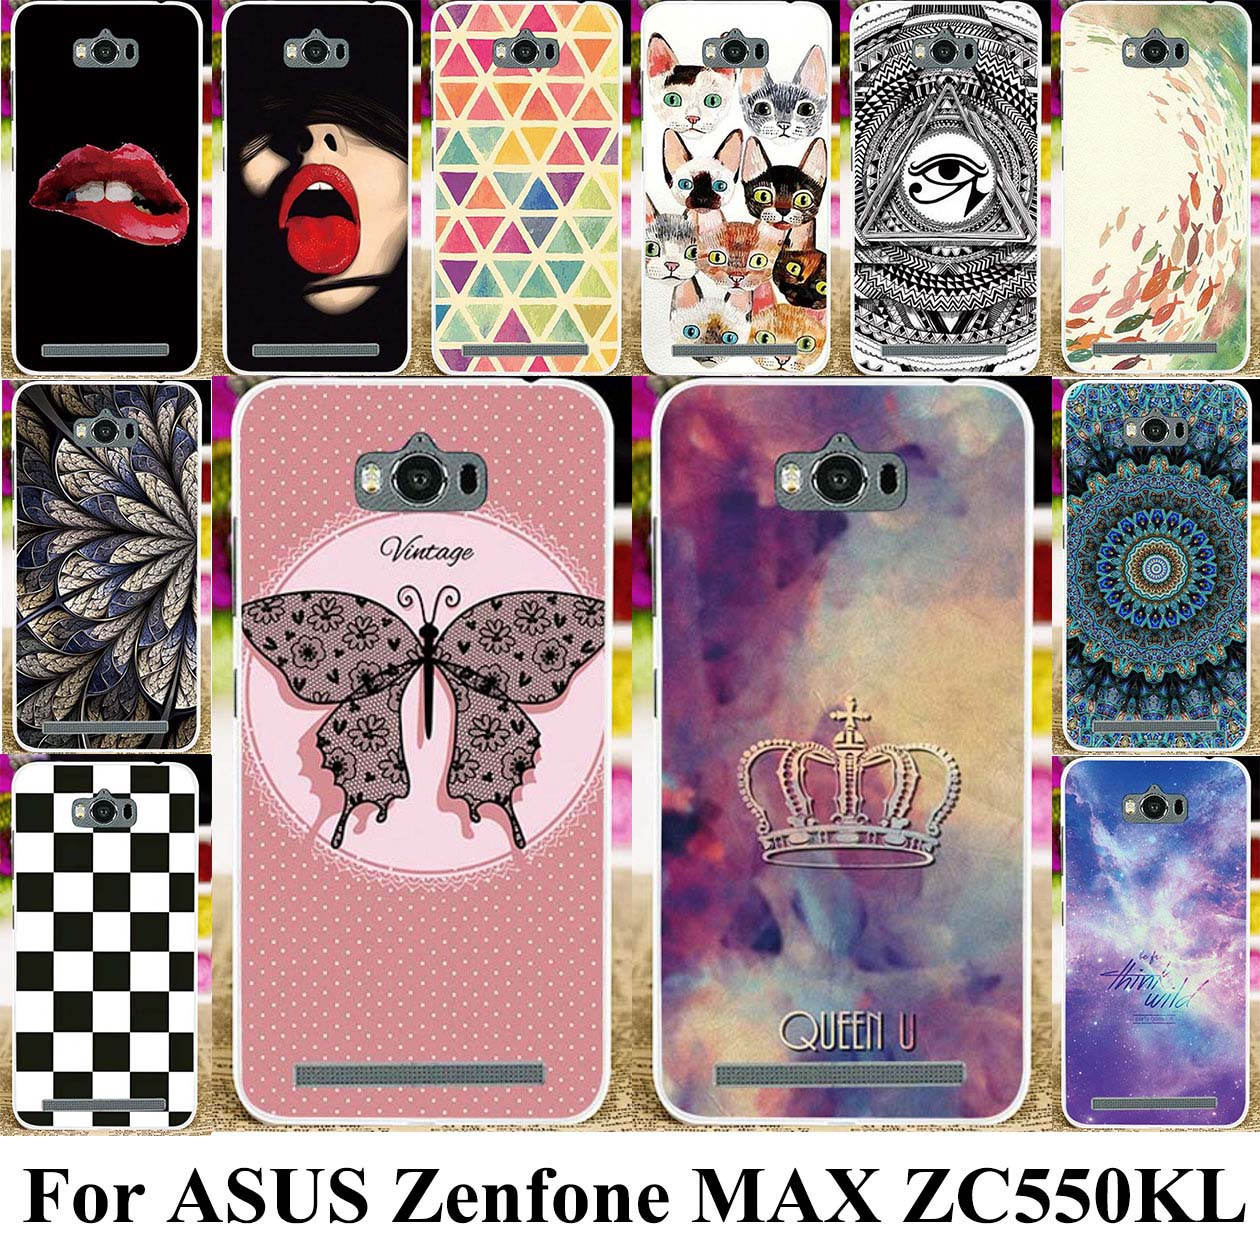 Silicone Mobile Phone Cover Case For <font><b>ASUS</b></font> Zenfone MAX <font><b>ASUS</b></font>_Z010DD Bag Shell Case <font><b>Z010D</b></font> ZC550KL Z010DA 5.5 inch image